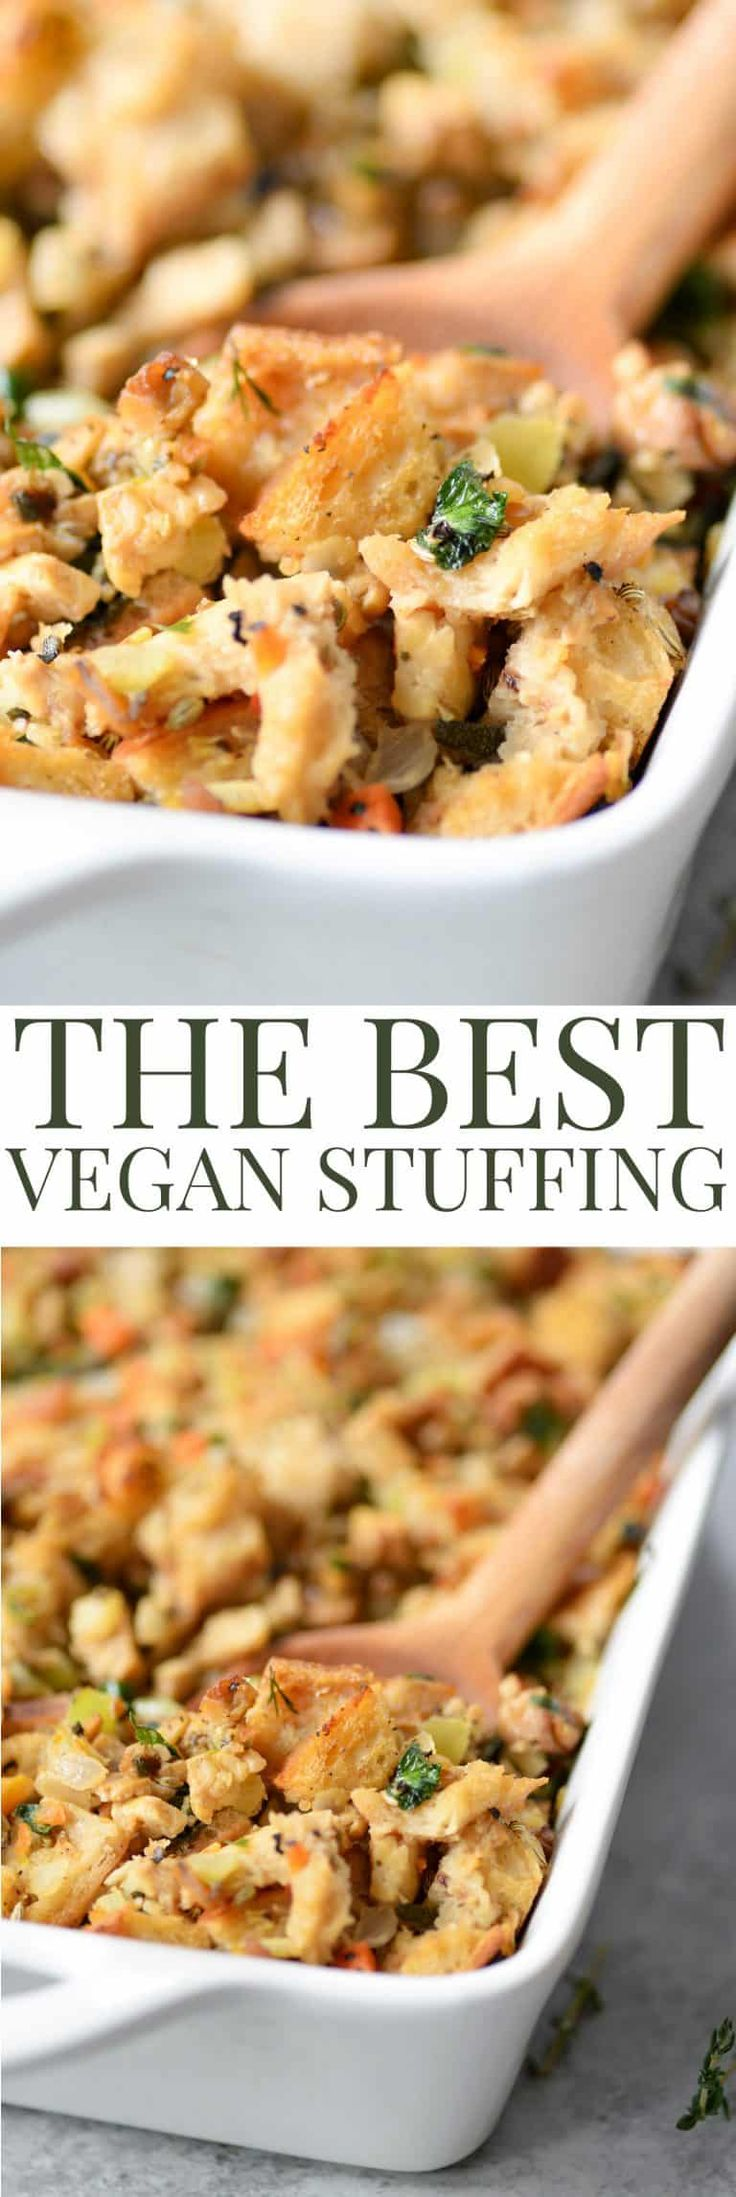 The BEST Vegan Stuffing! Made with homemade tempeh sausage, sauteed vegetables and sourdough bread. This stuffing is a must make for Thanksgiving and the holidays.   www.delishknowledge.com   #stuffing #vegan #thanksgiving #healthy #christmas #holidays #healthy #sourdoughbread #tempe